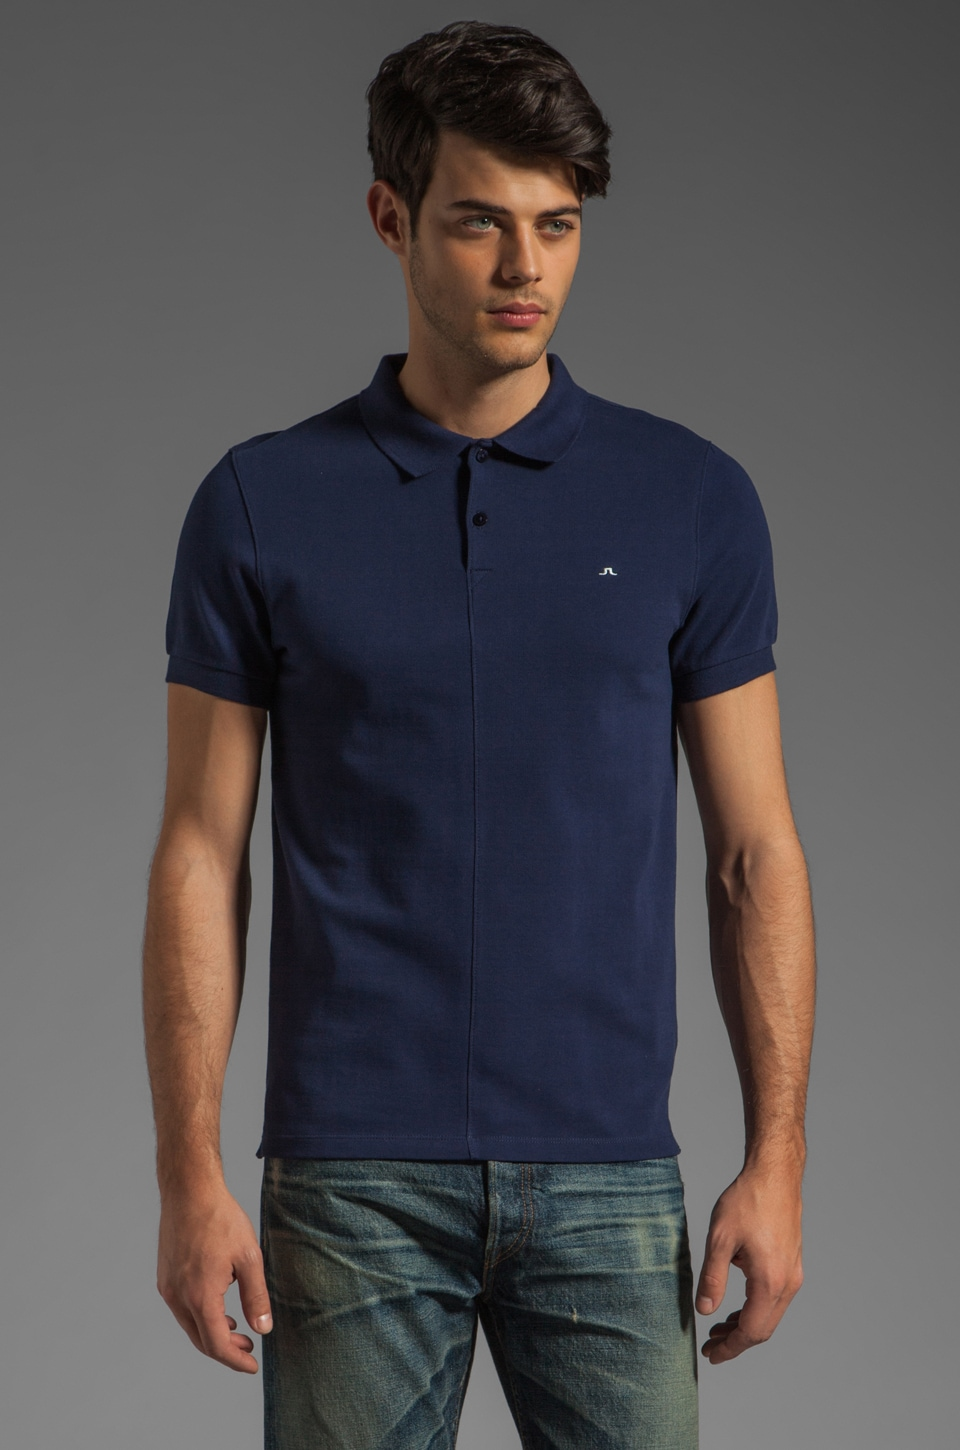 J. Lindeberg Rubi Slim JL Pique Polo in Dark Blue/Purple